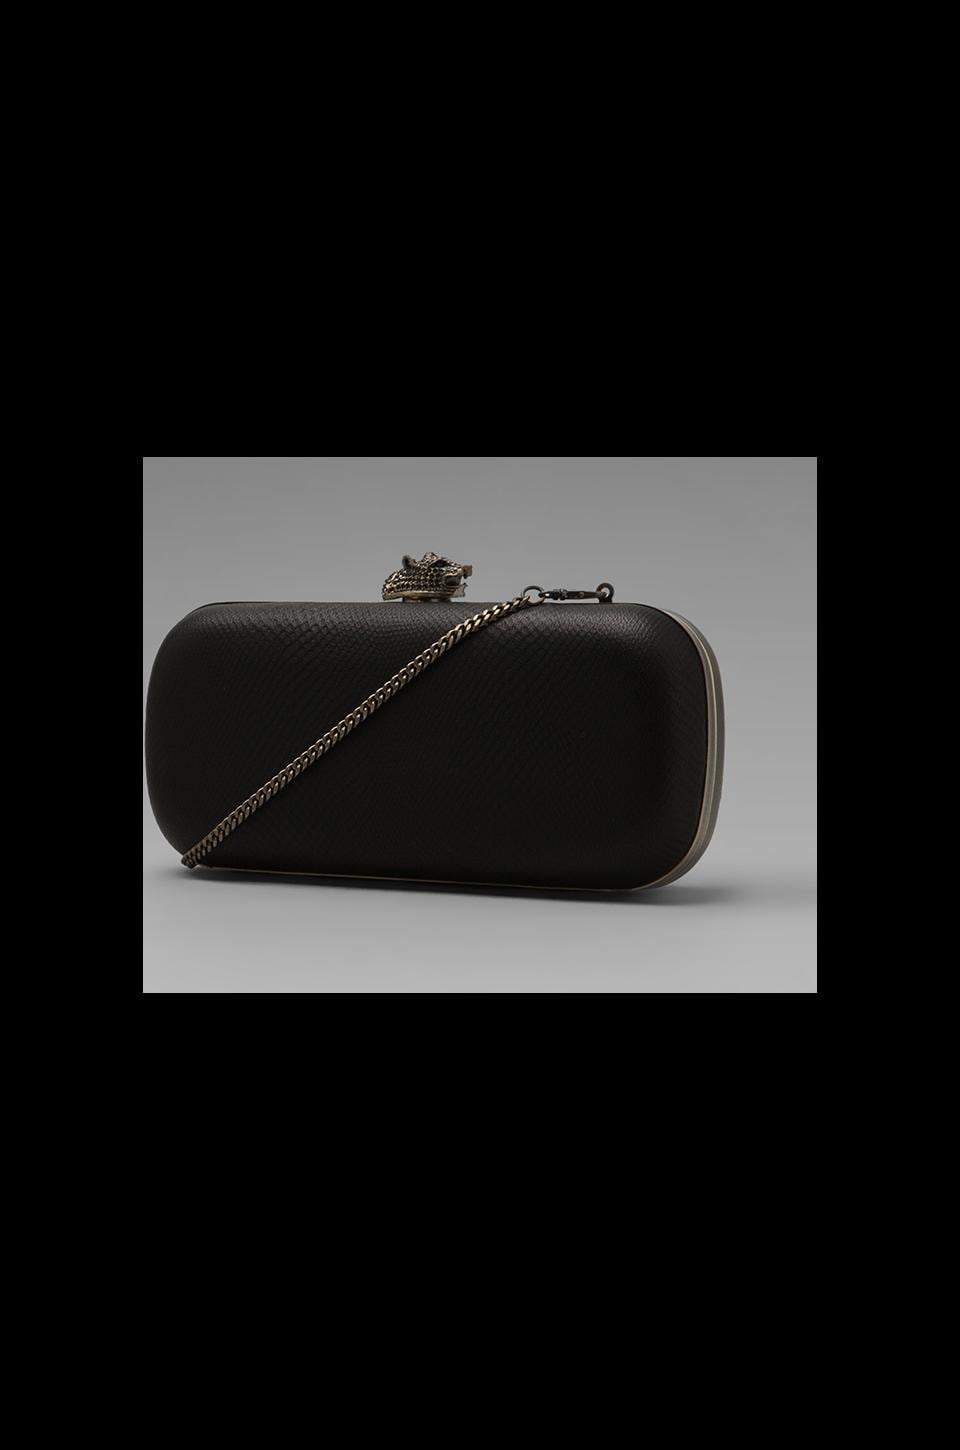 House of Harlow 1960 House of Harlow Adele Clutch in Matt Black with Brass Hardware